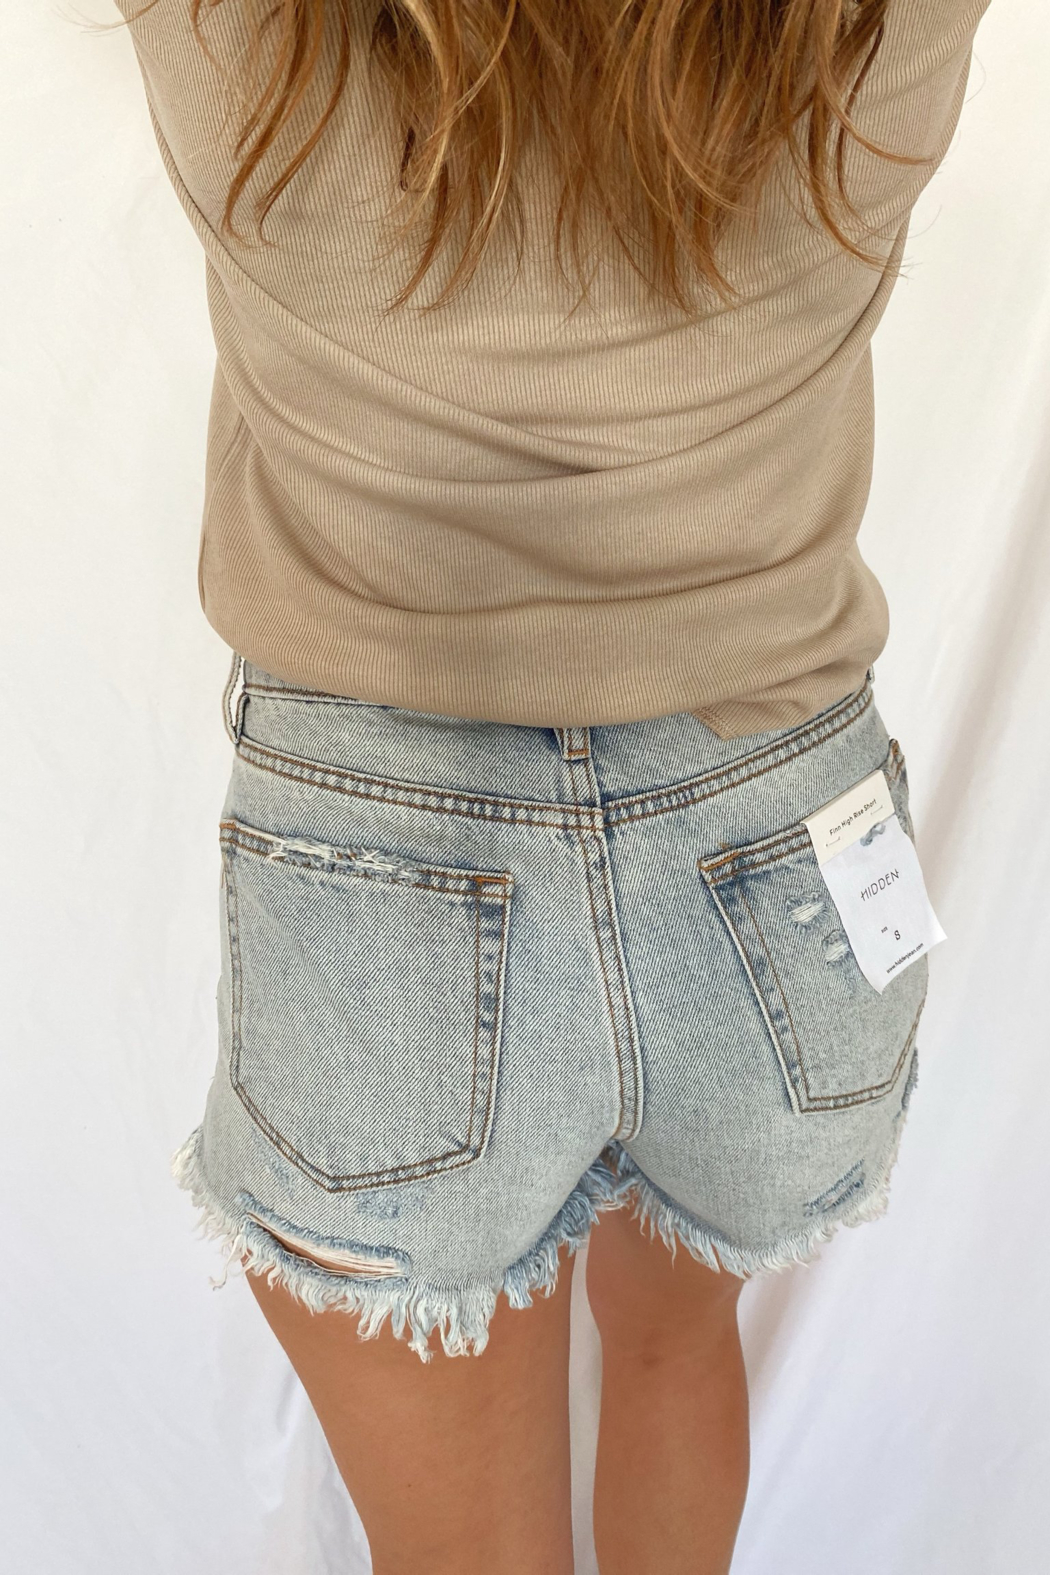 Hidden Jeans Finn High Rise Shorts - Side Cropped Image